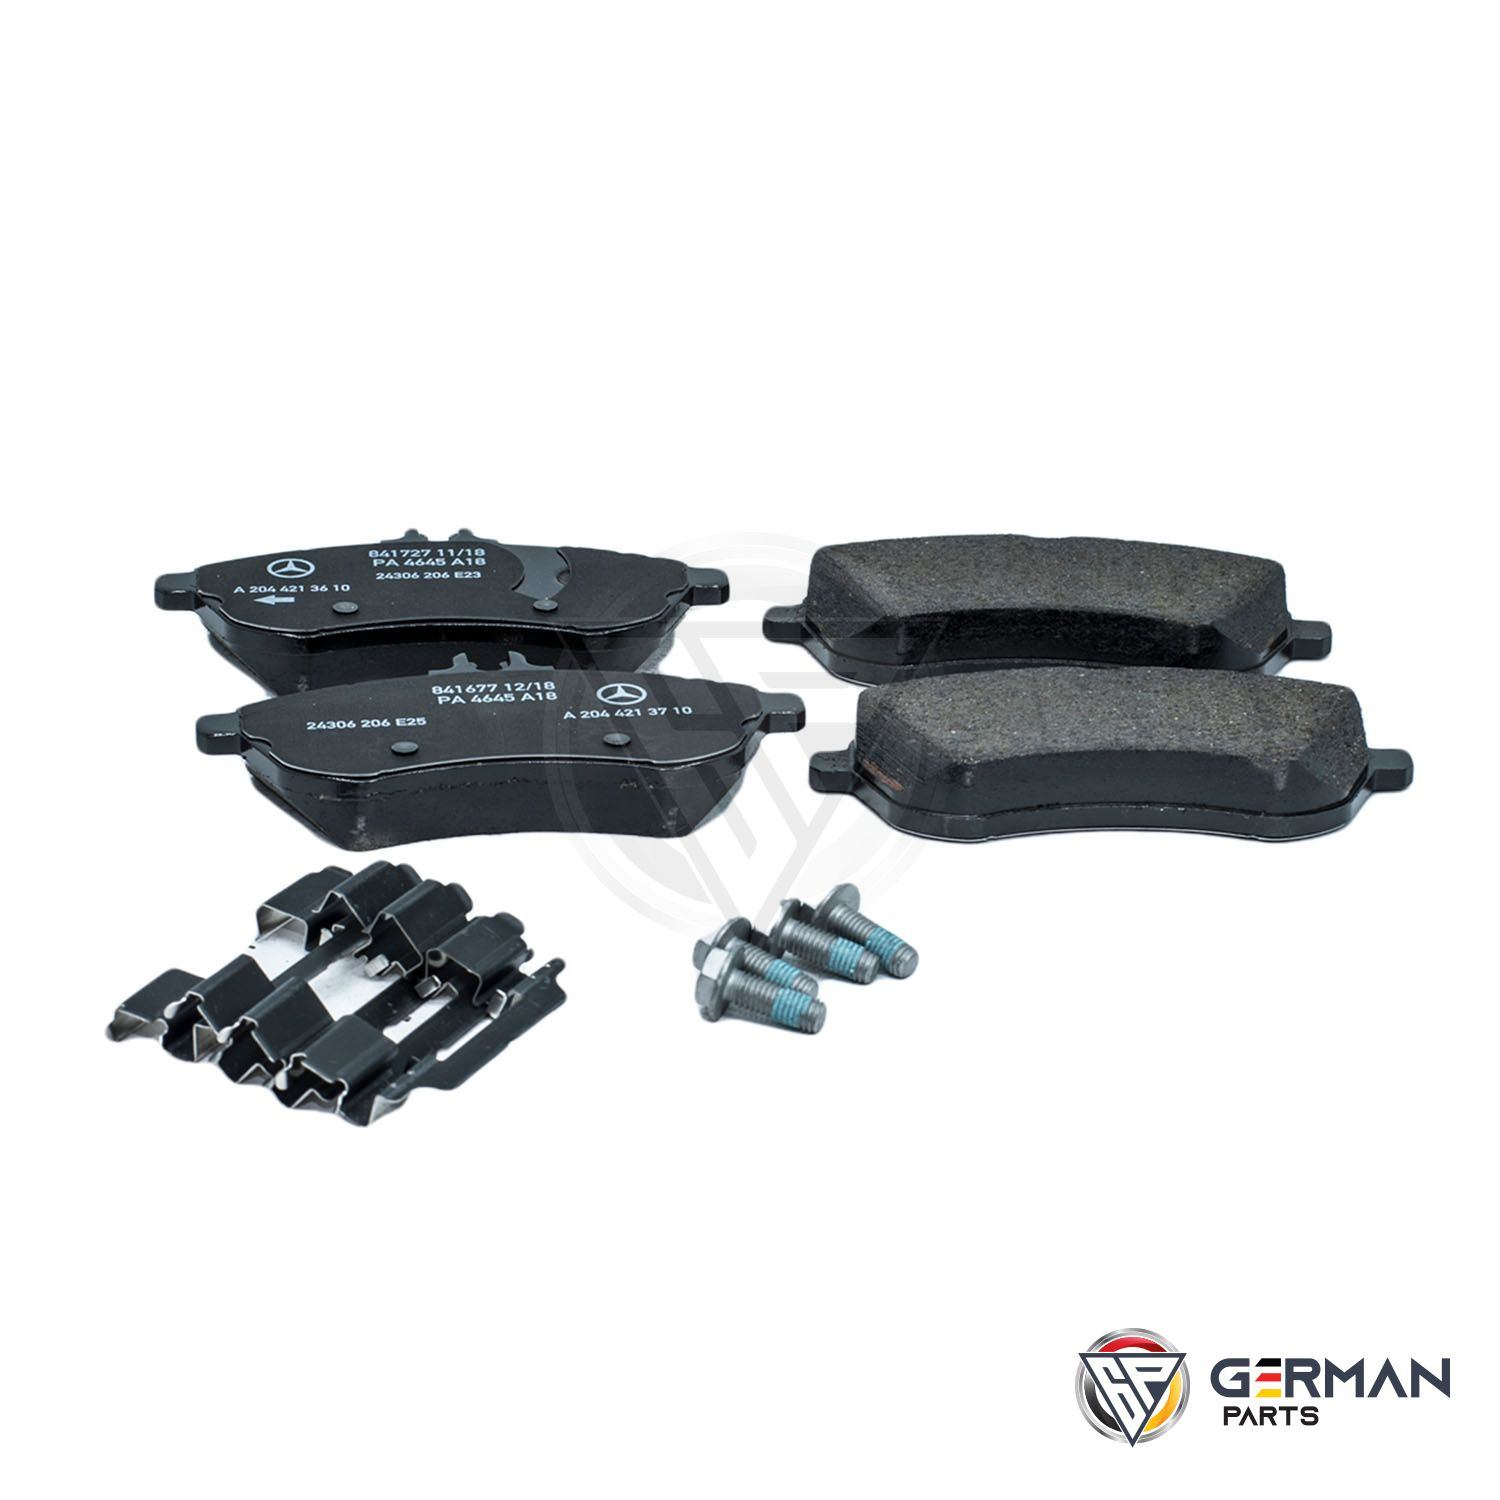 Buy Genuine Mercedes Benz Front Brake Pad Set 0074209220 - German Parts